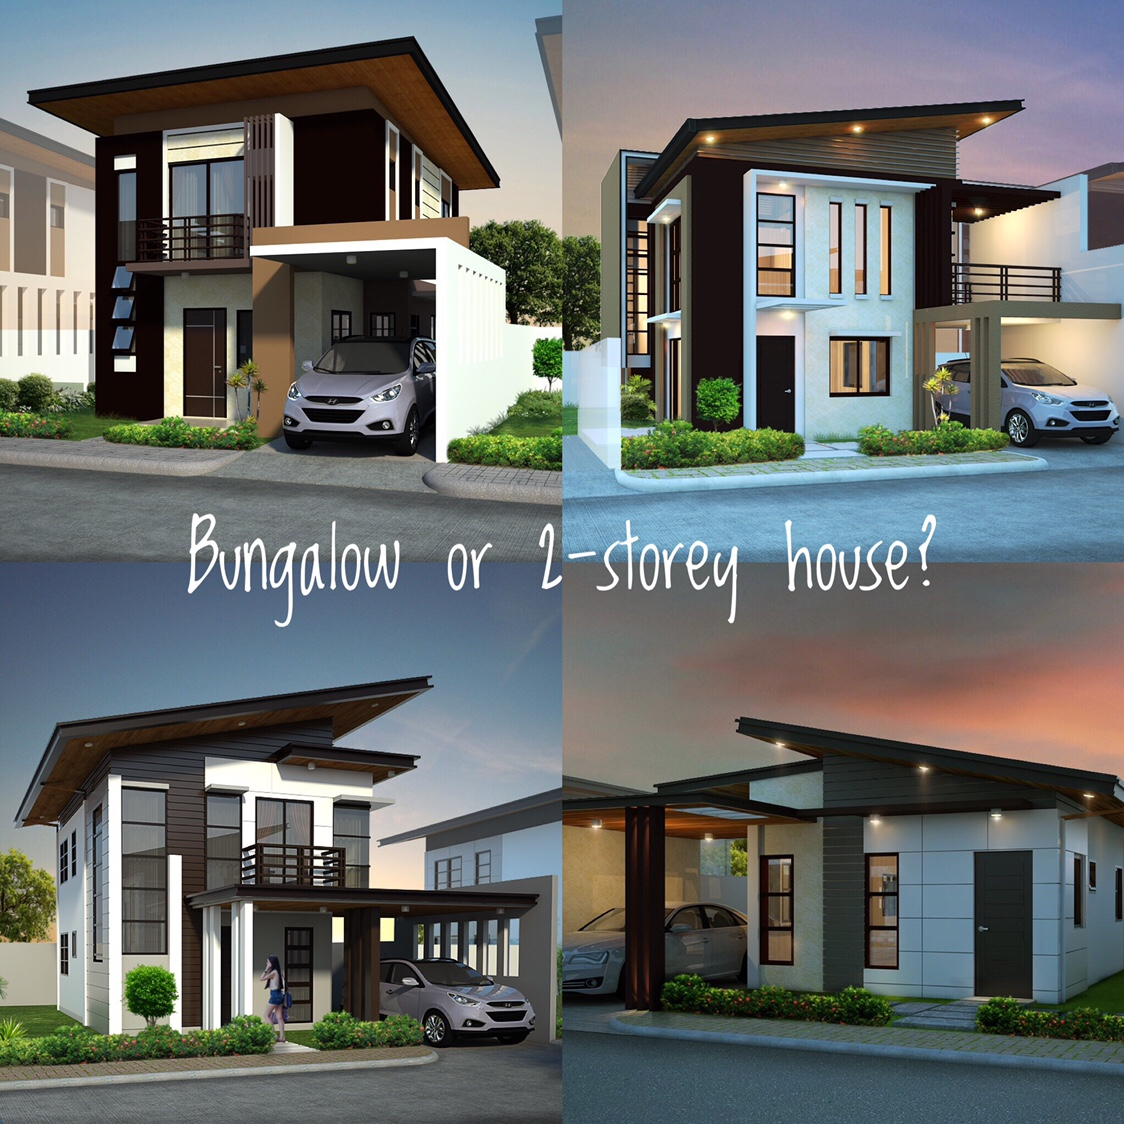 A Bungalow Or A 2-storey House?